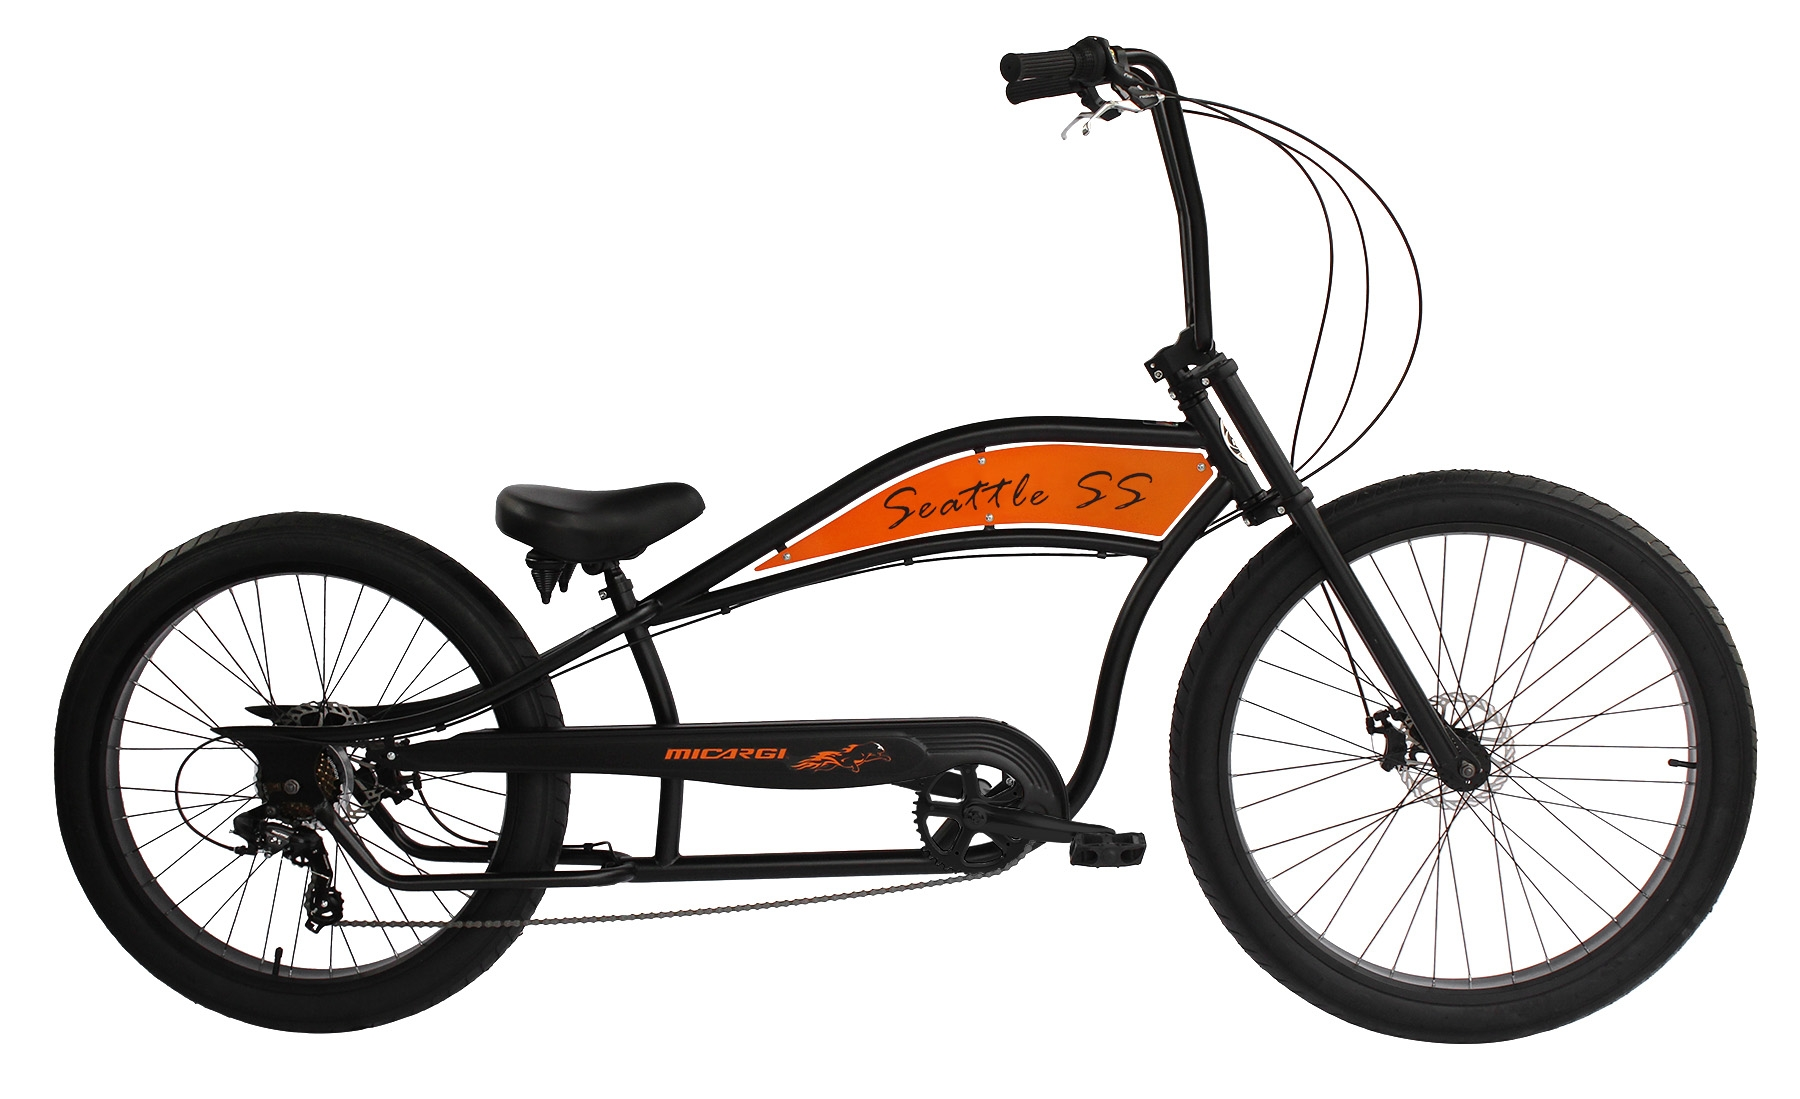 Micargi Seattle Ss Chopper Stretch Beach Cruiser Bike